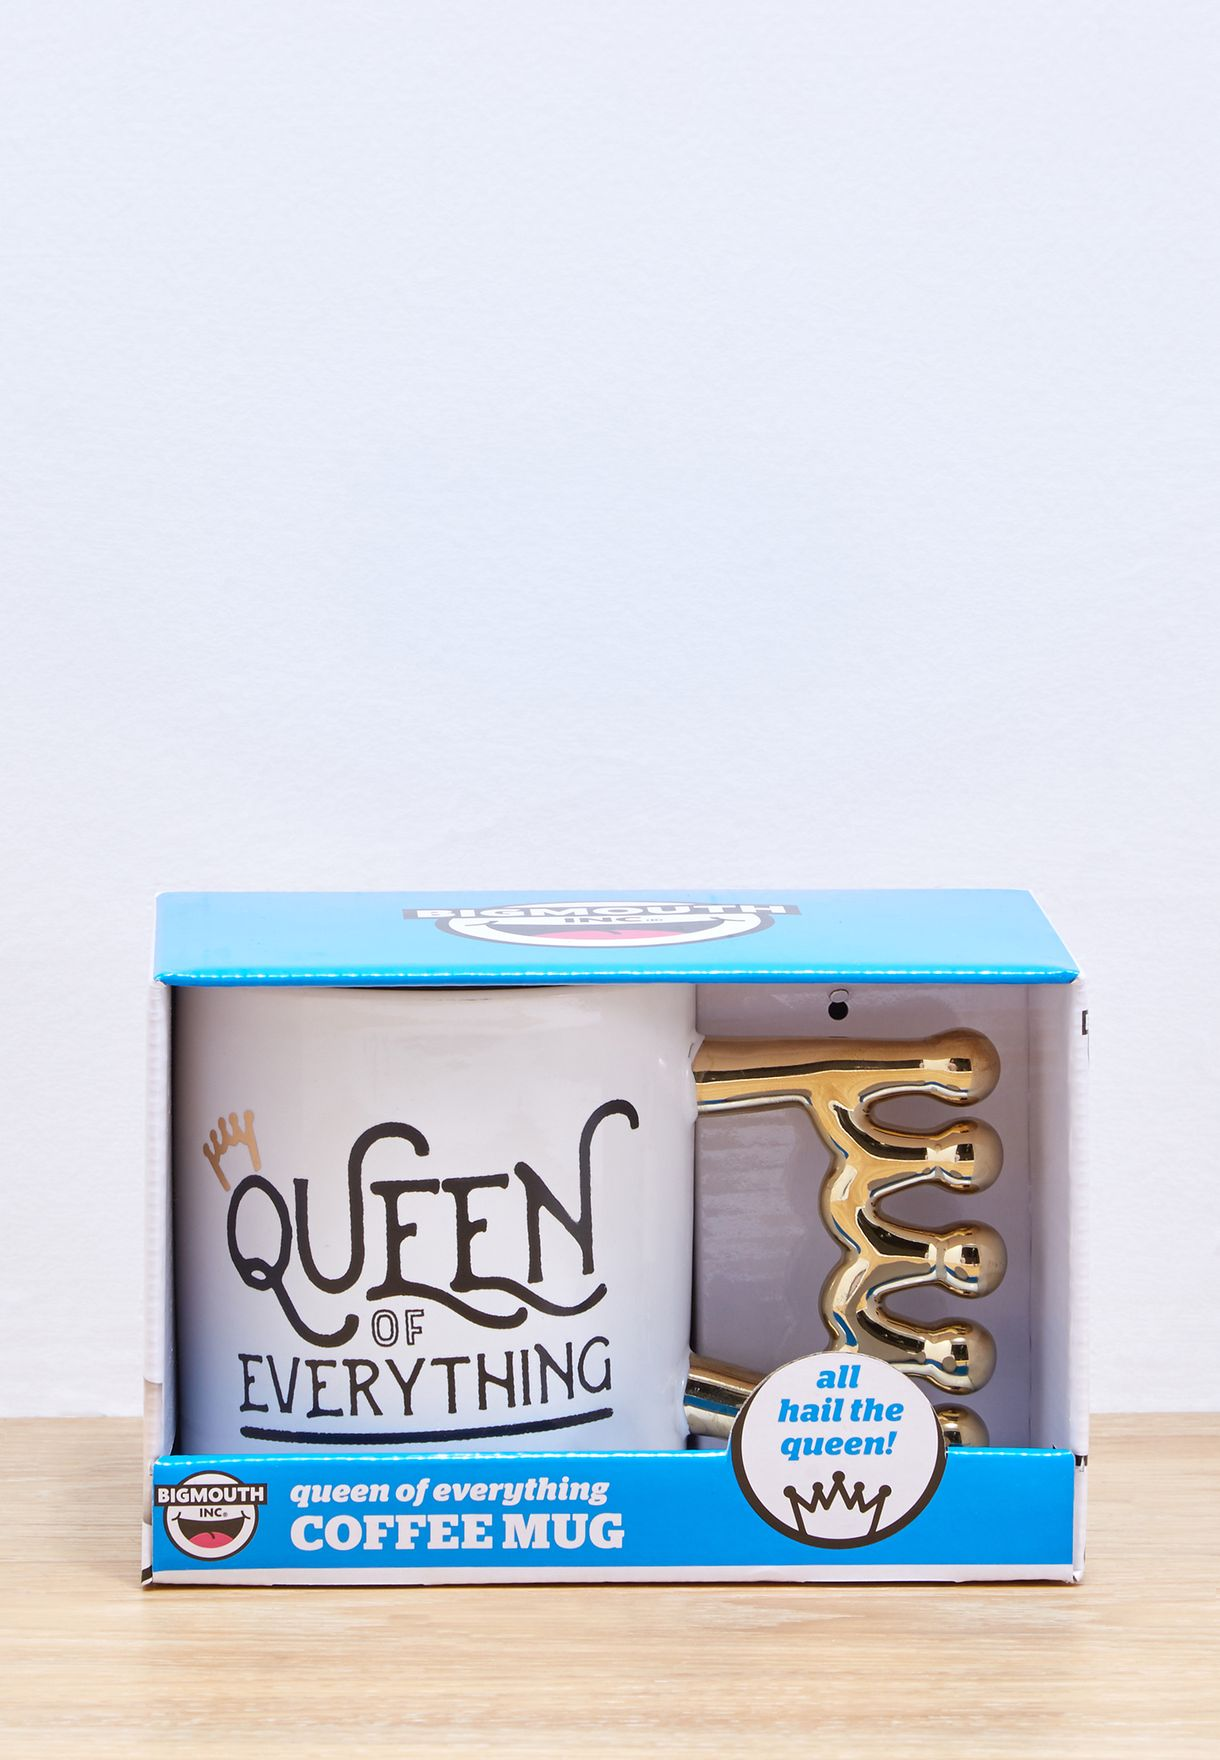 The Queen of Everything Coffee Mug